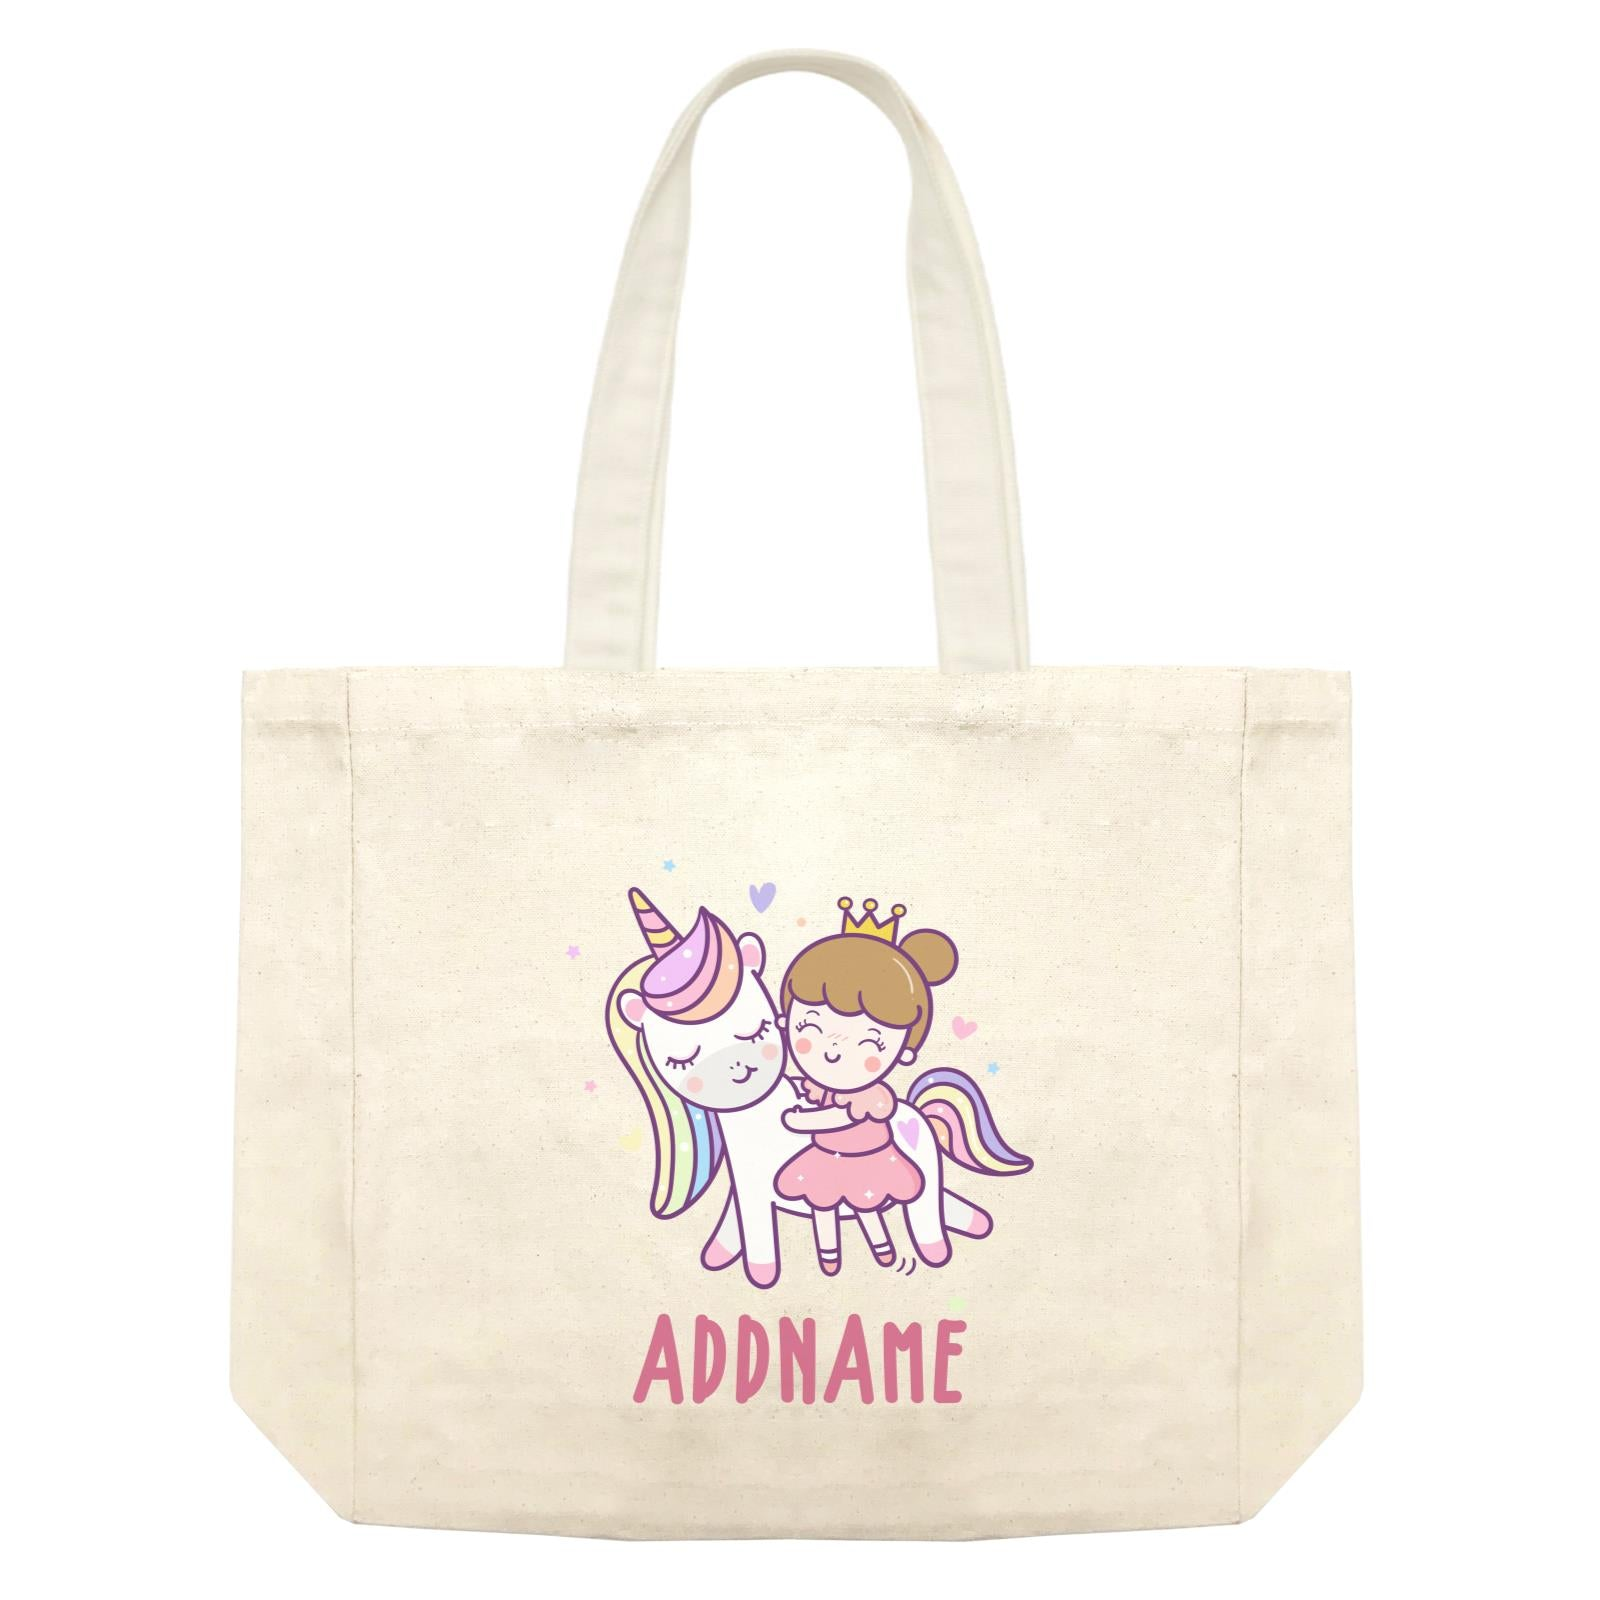 Unicorn And Princess Series Cute Unicorn With Princess Addname Shopping Bag